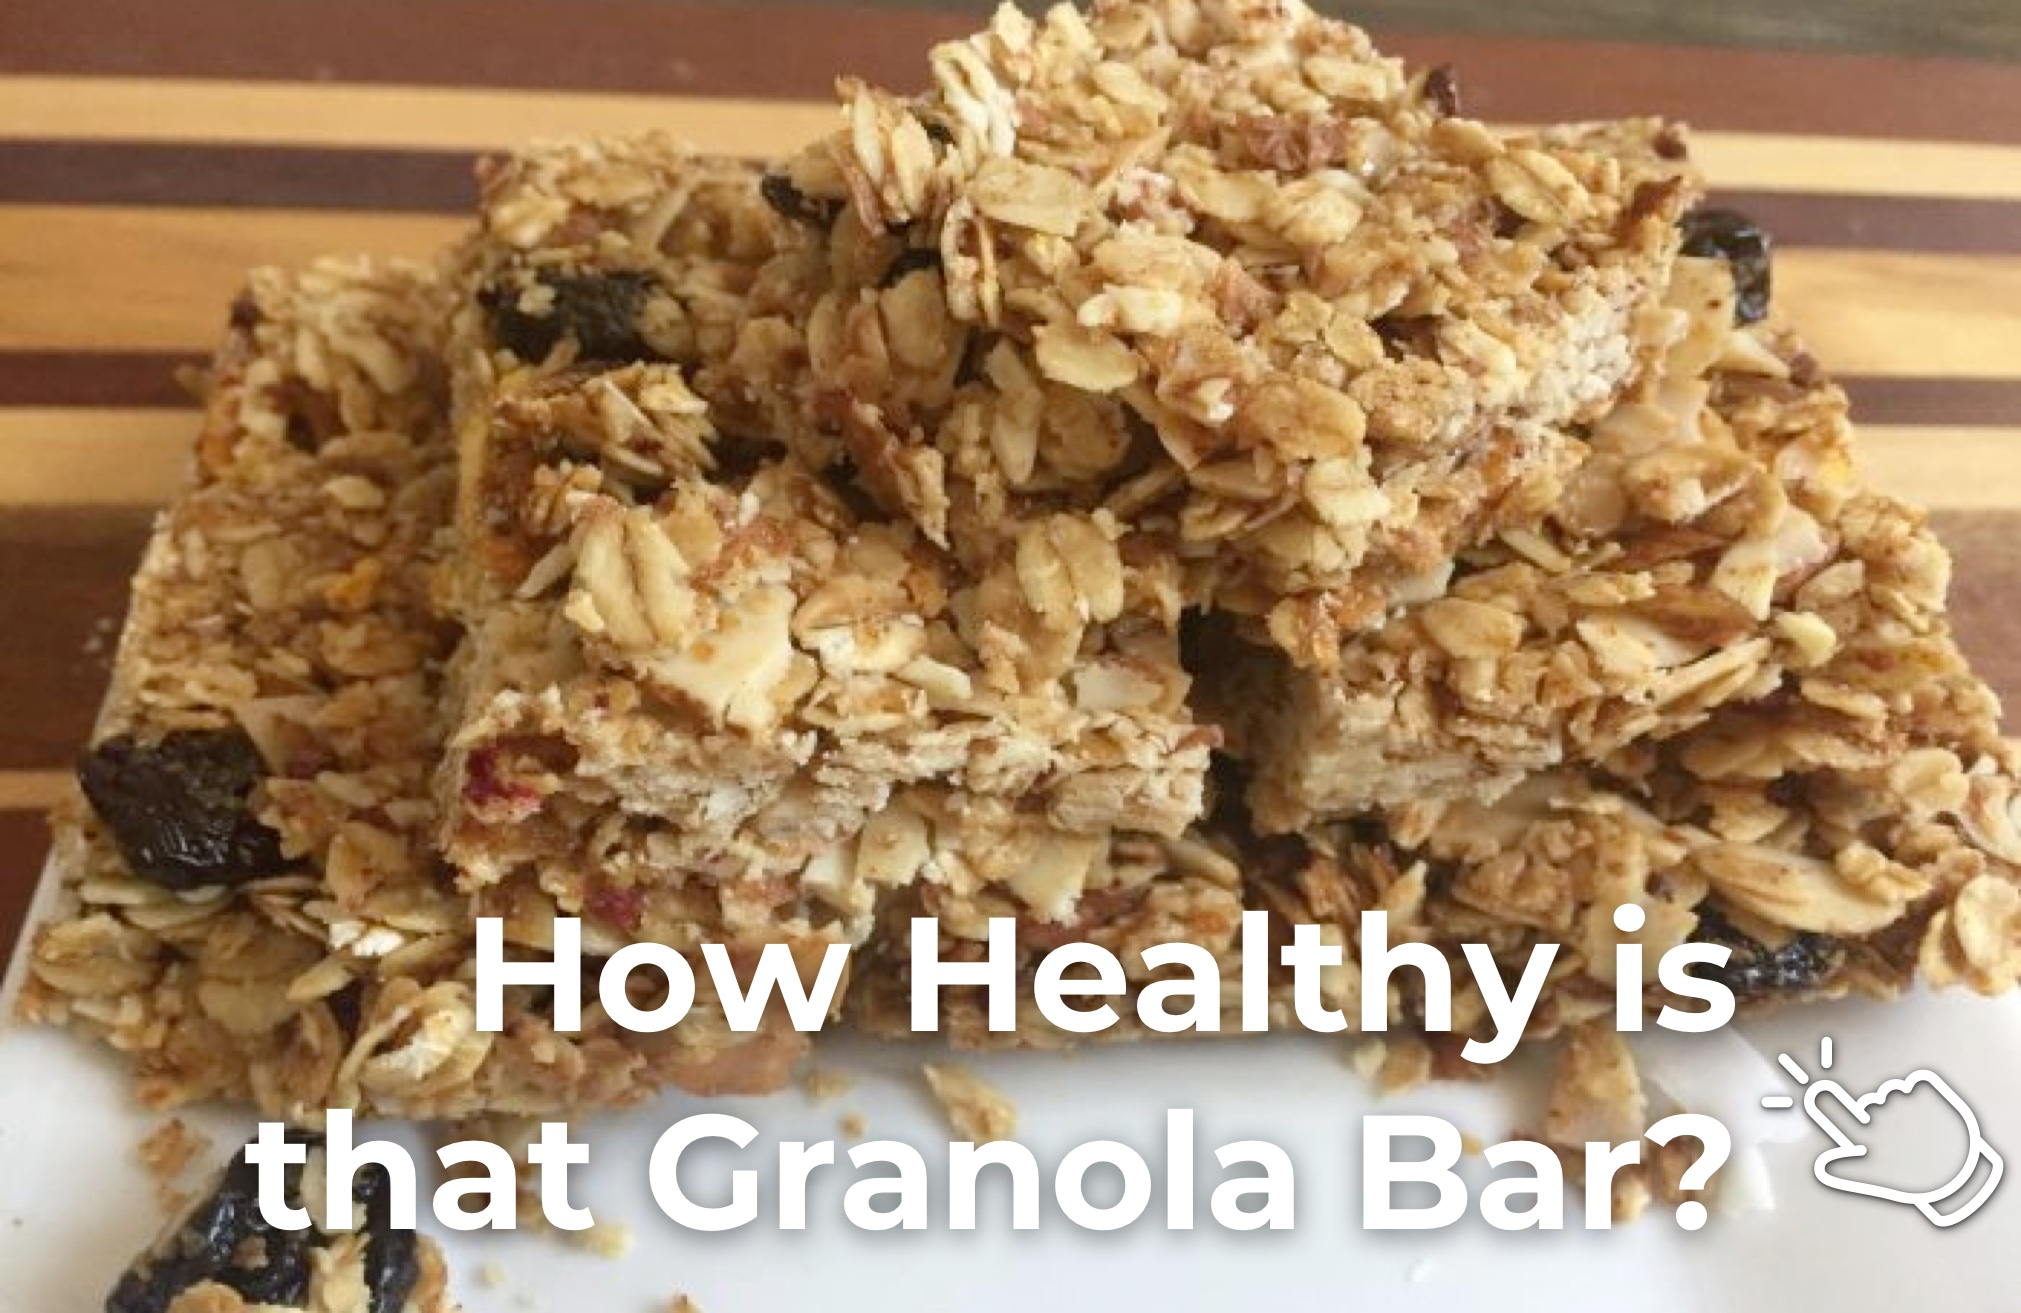 How Healthy is that Granola Bar?